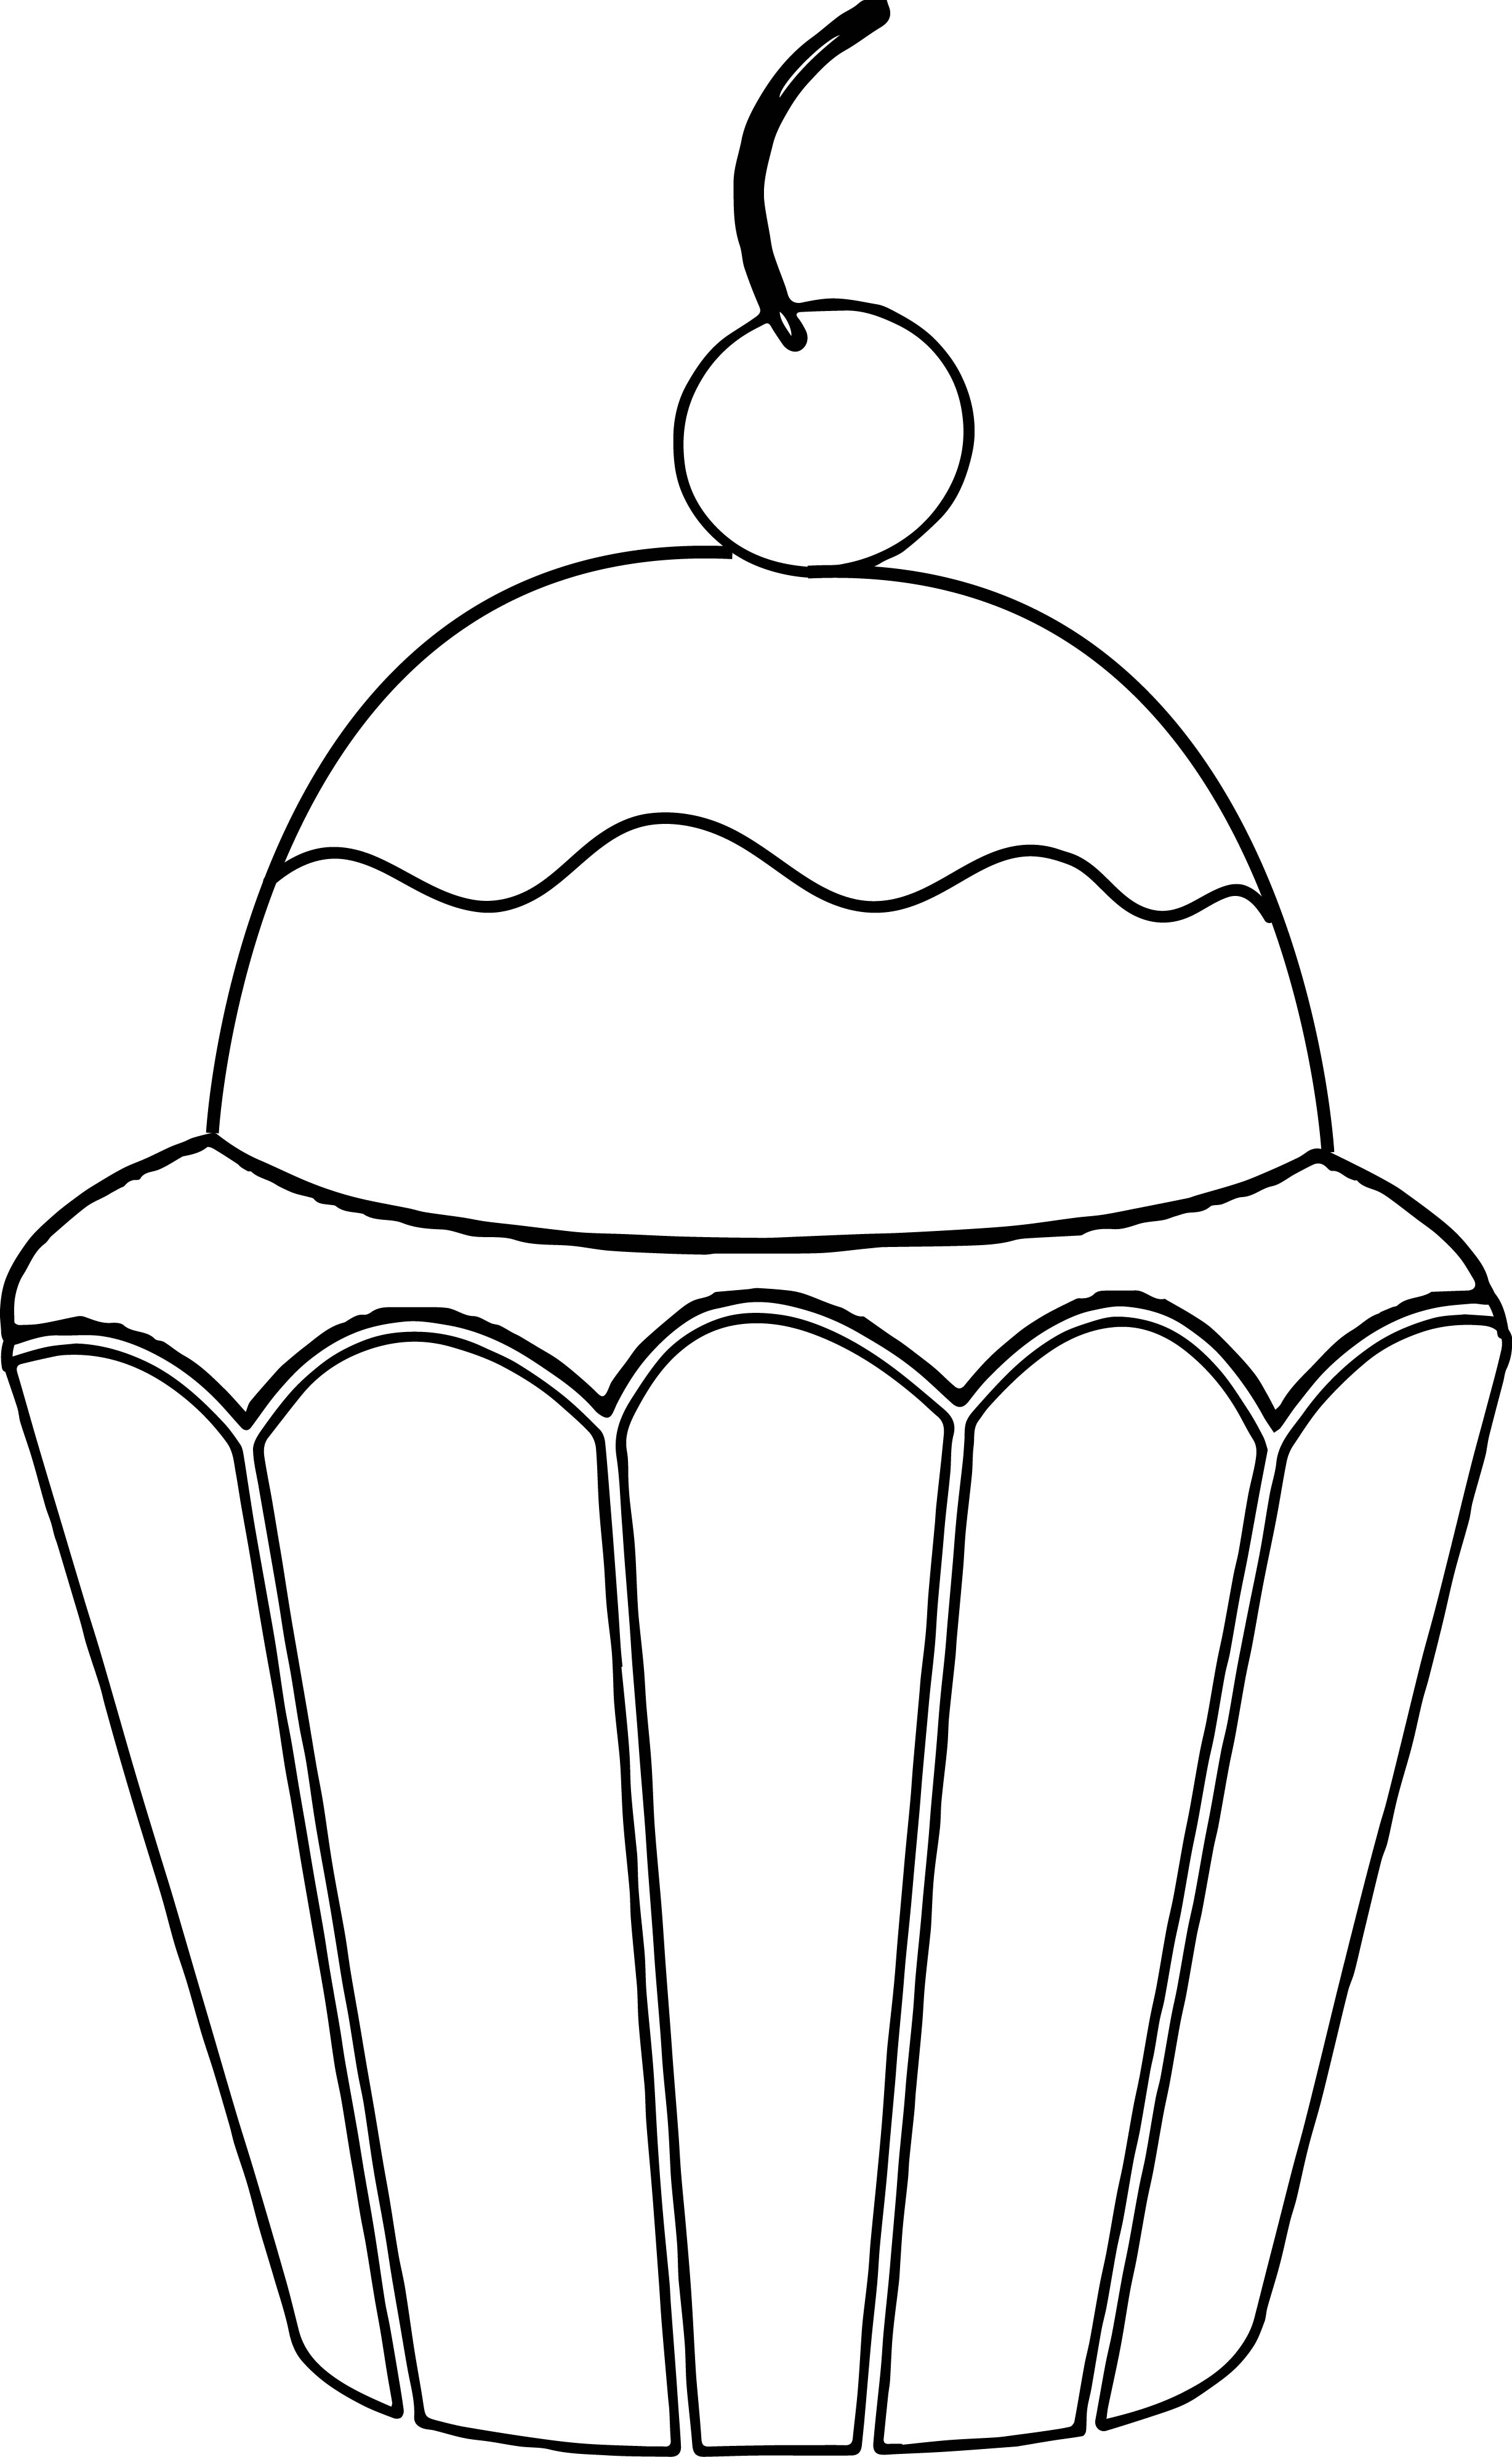 2456x3990 Image of Birthday Clipart Black and White